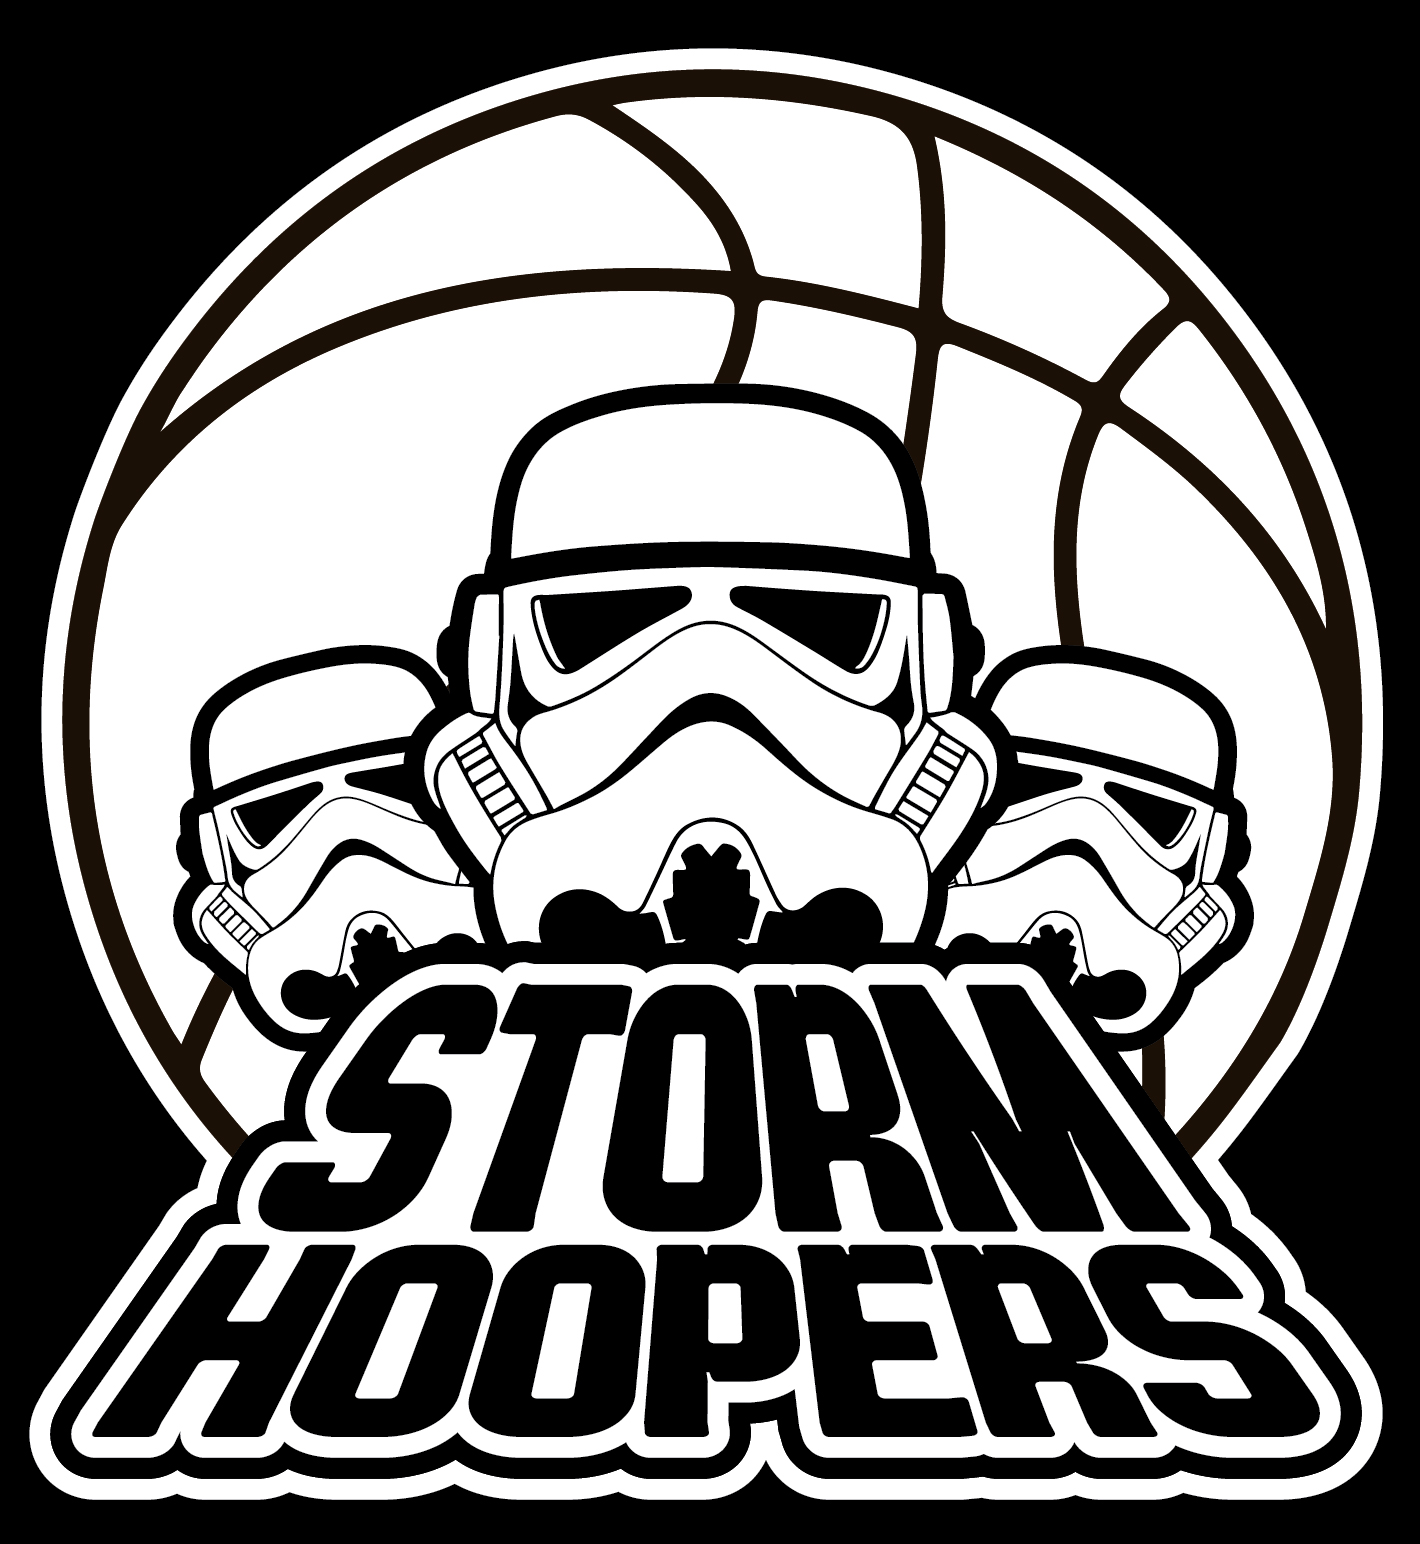 Storm-Hoopers_V2_White-Lines.jpg